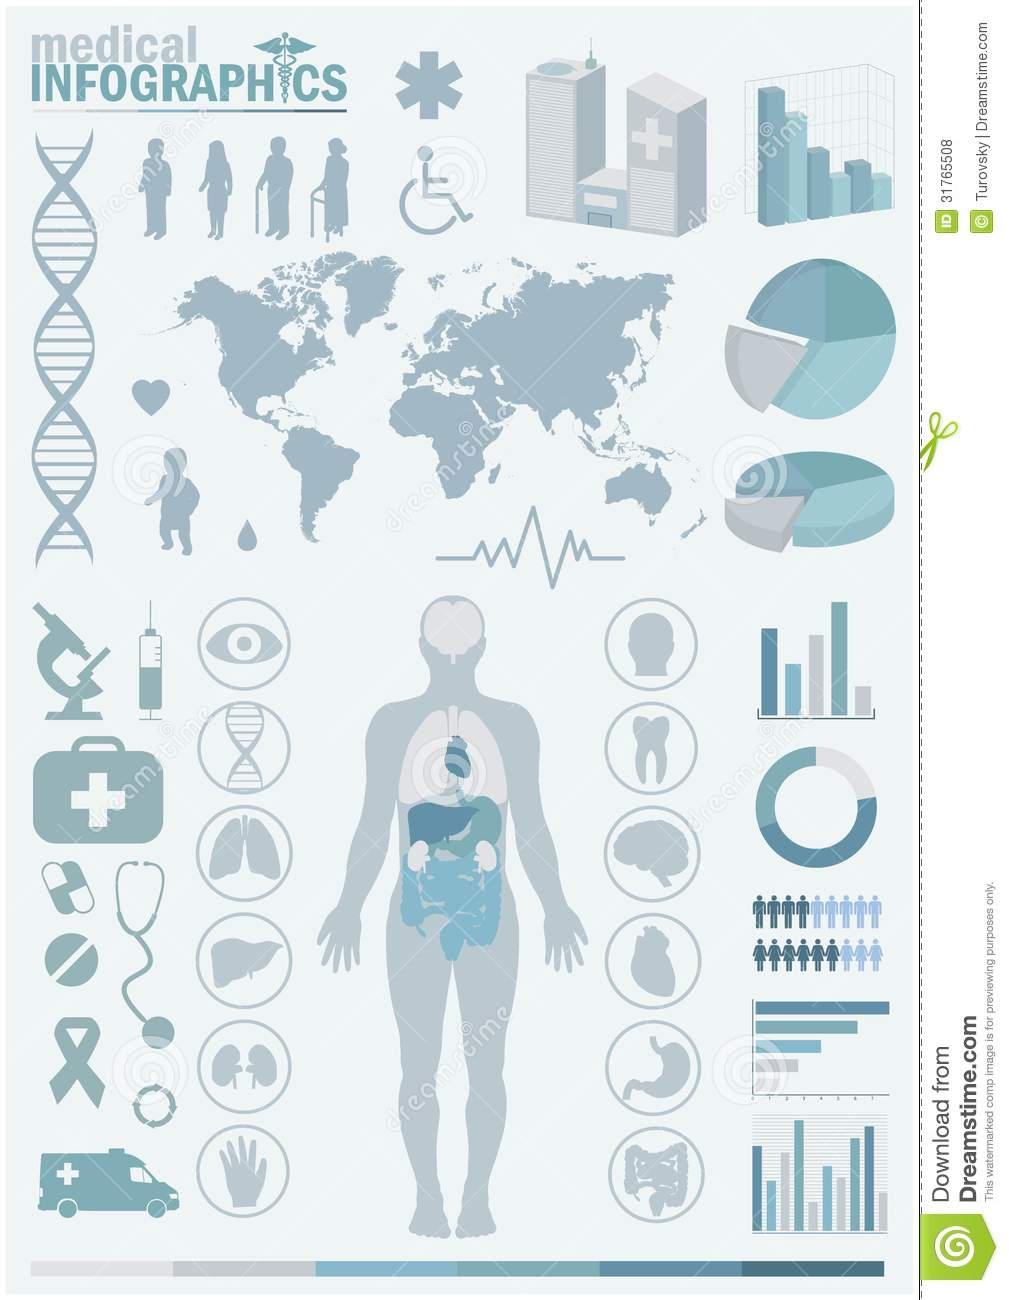 Medical infographics stock vector. Illustration of illustration ...